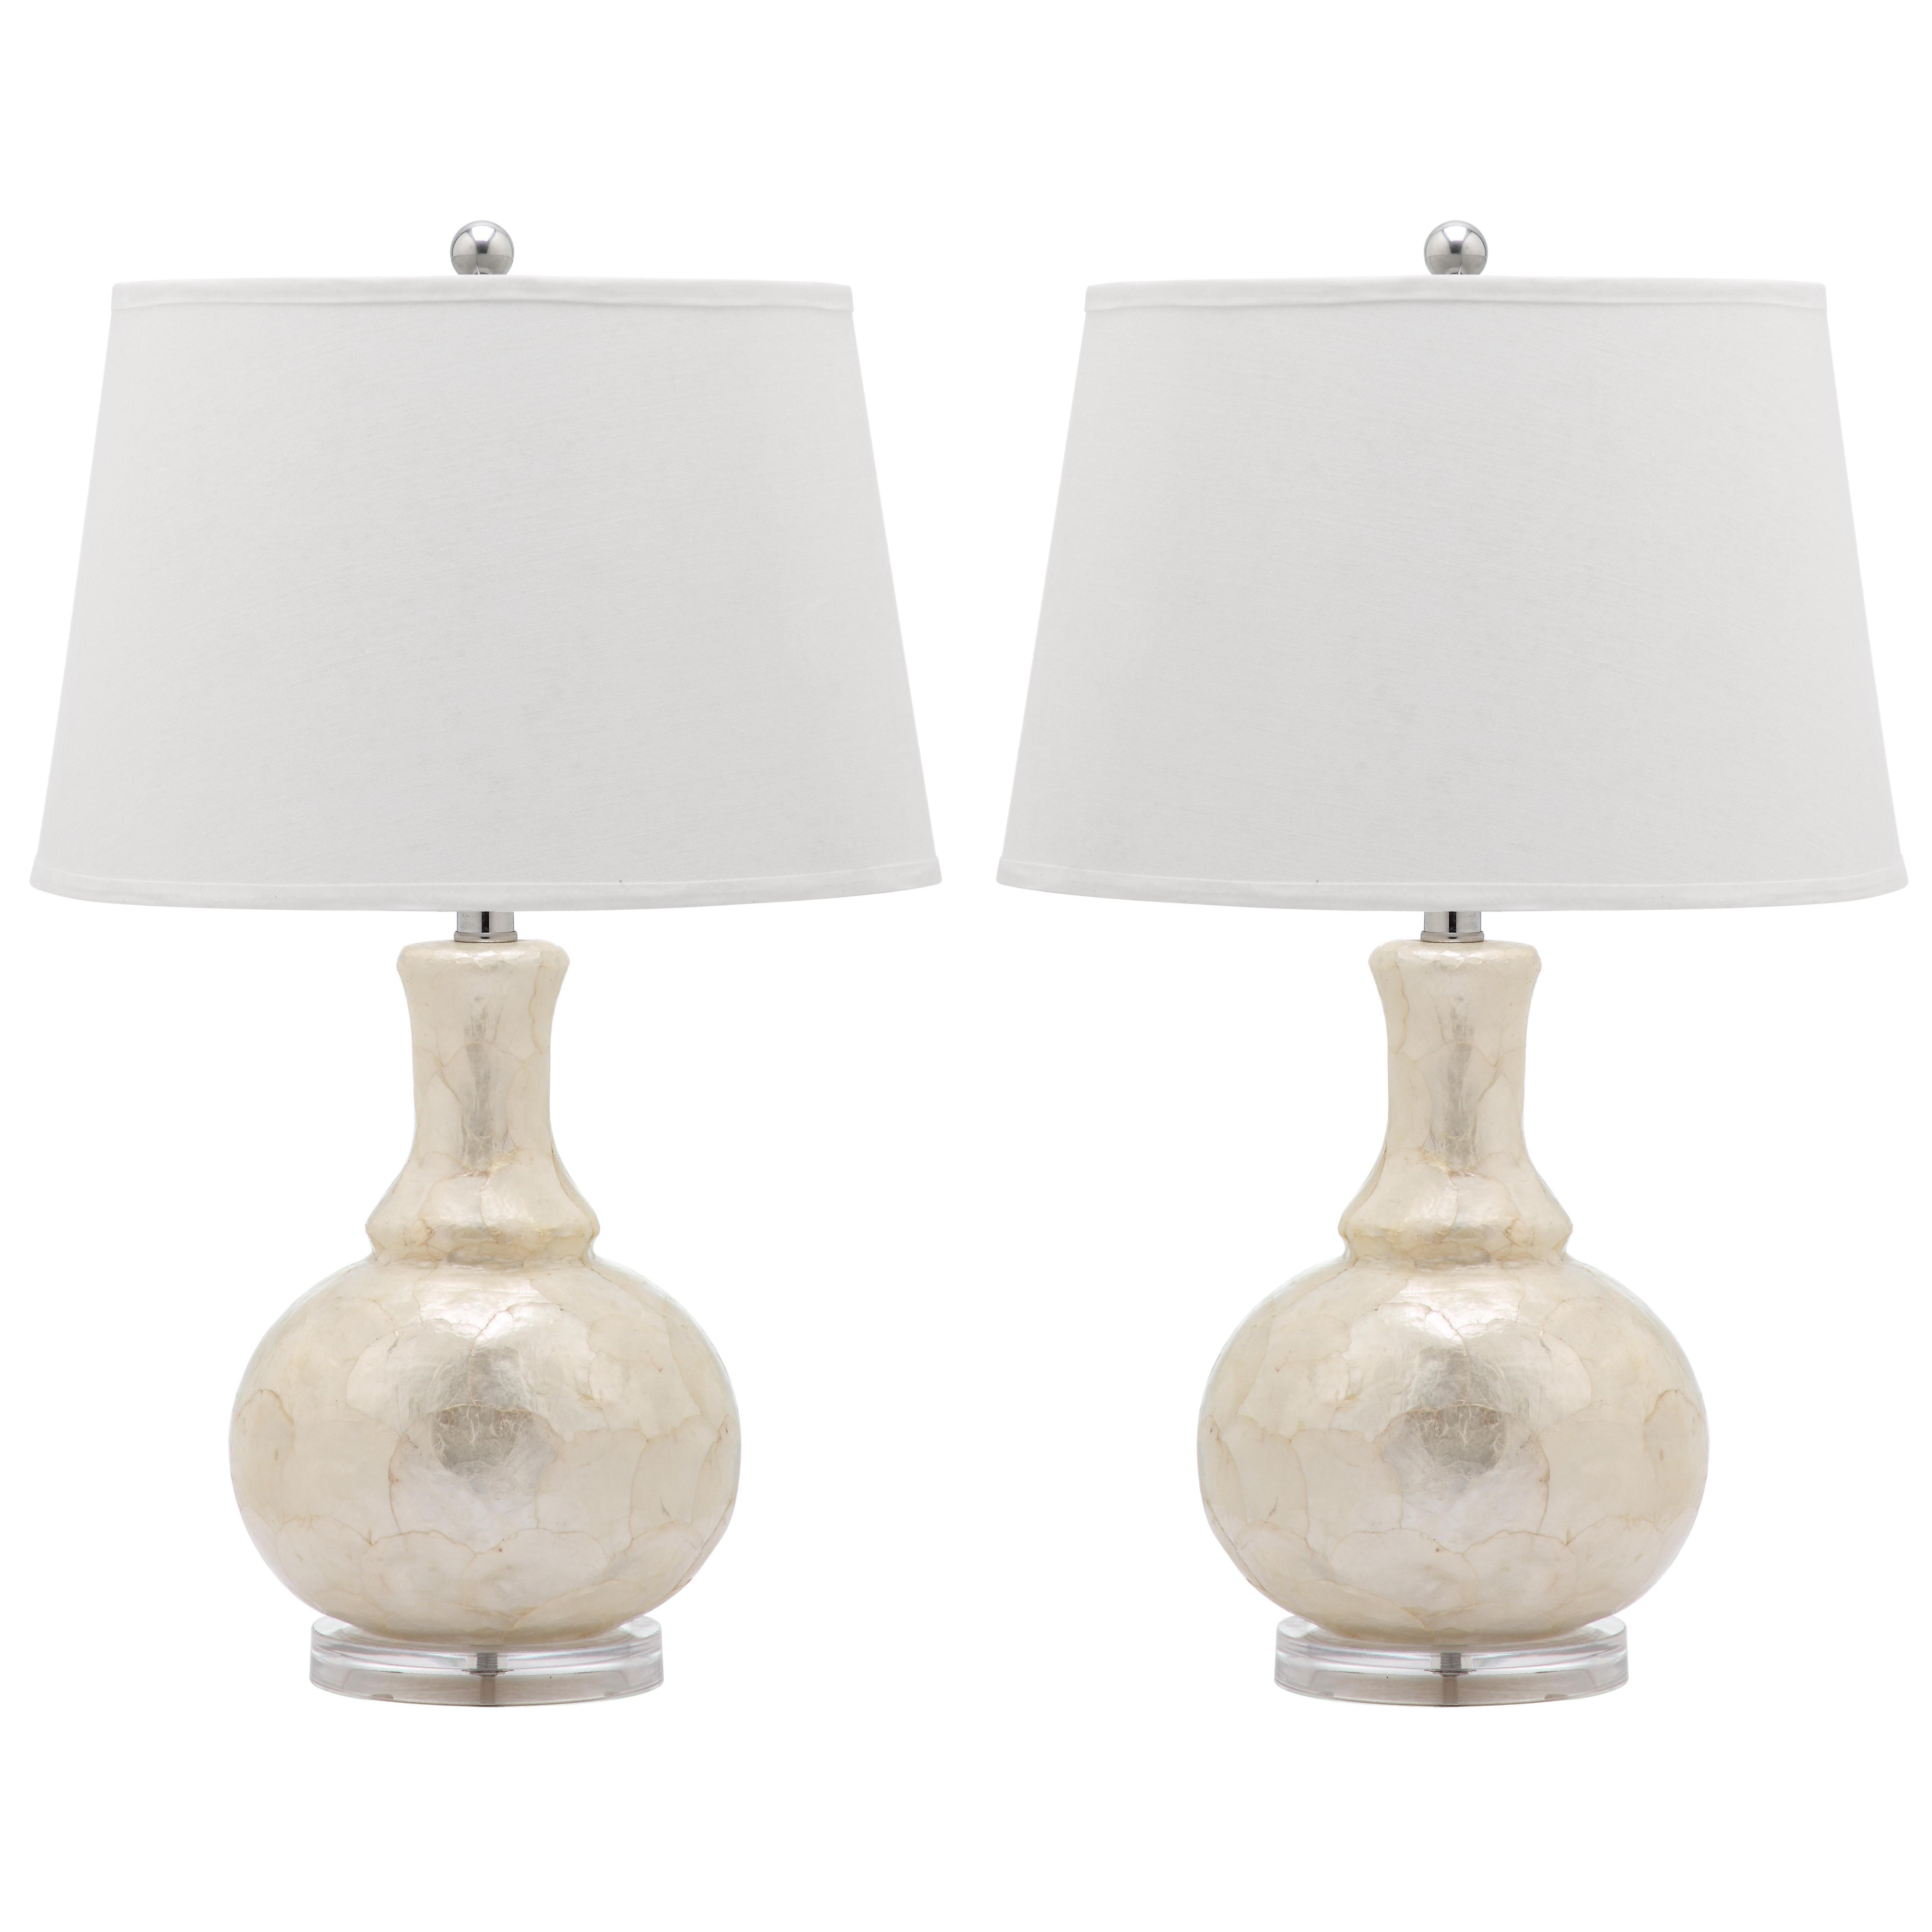 Safavieh Shelley Gourd Table Lamps Set Of 2